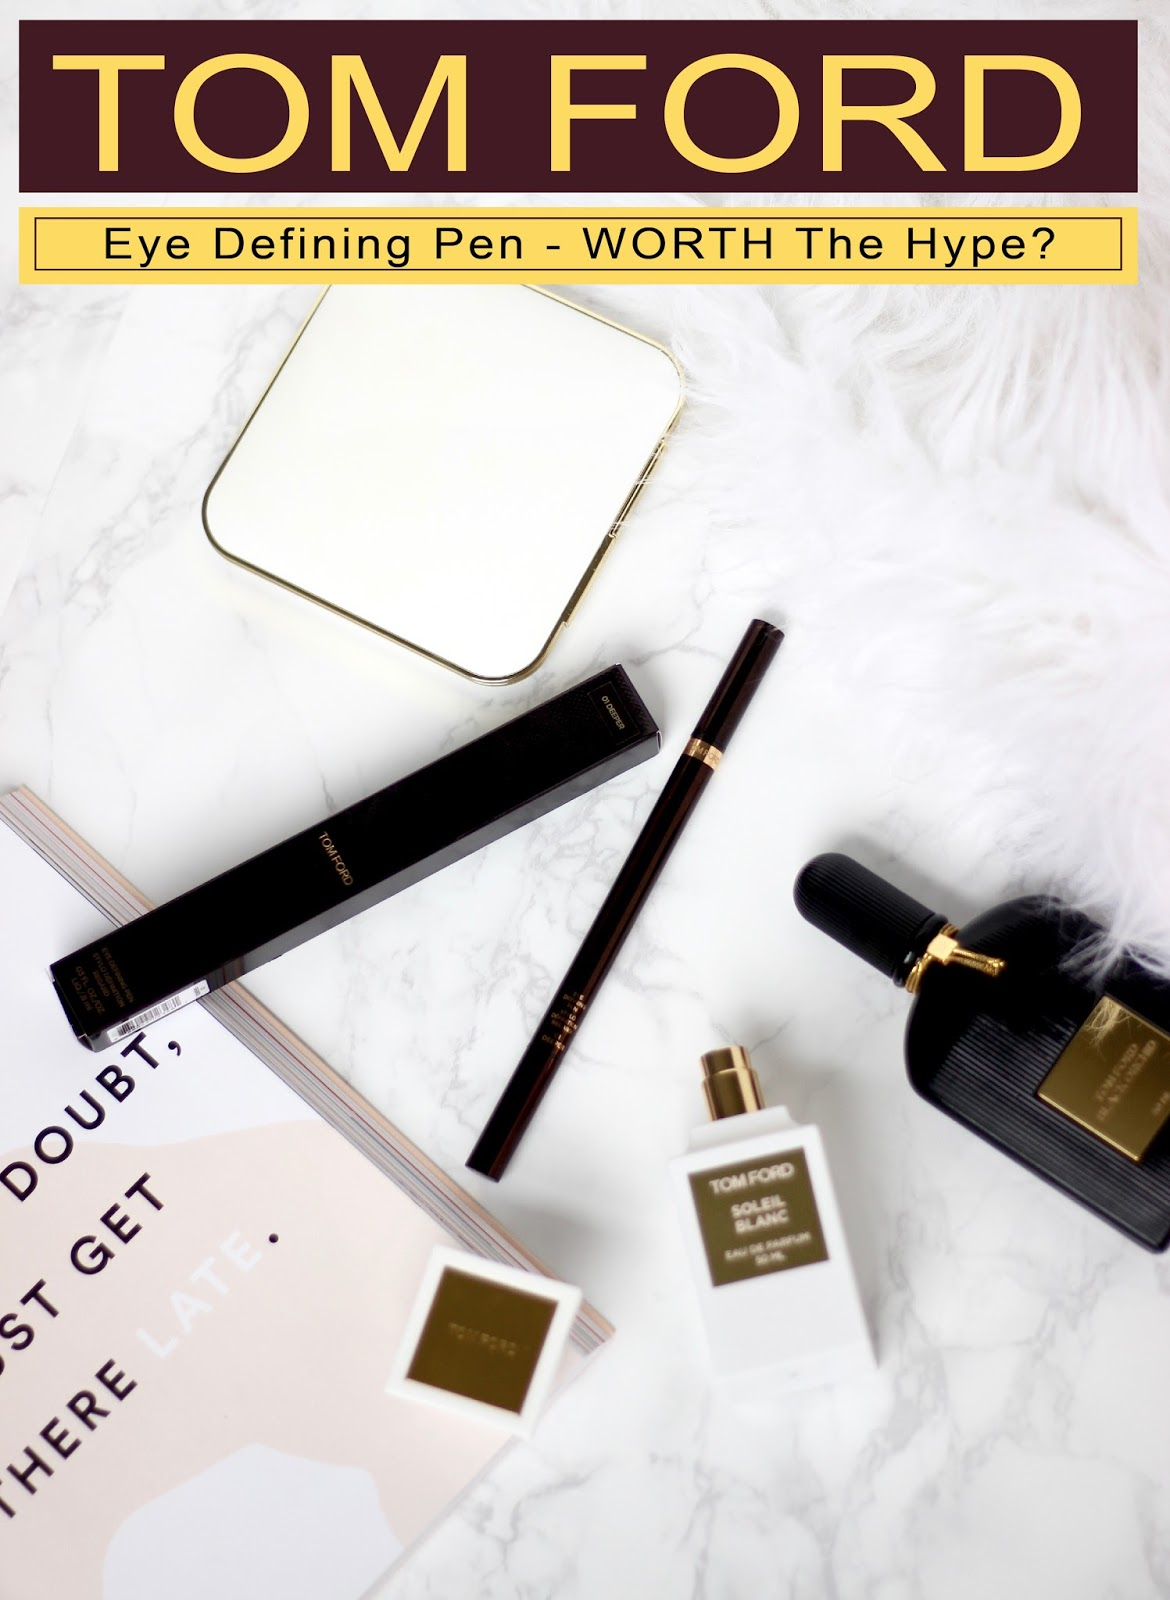 Tom Ford eye defining pen - Review